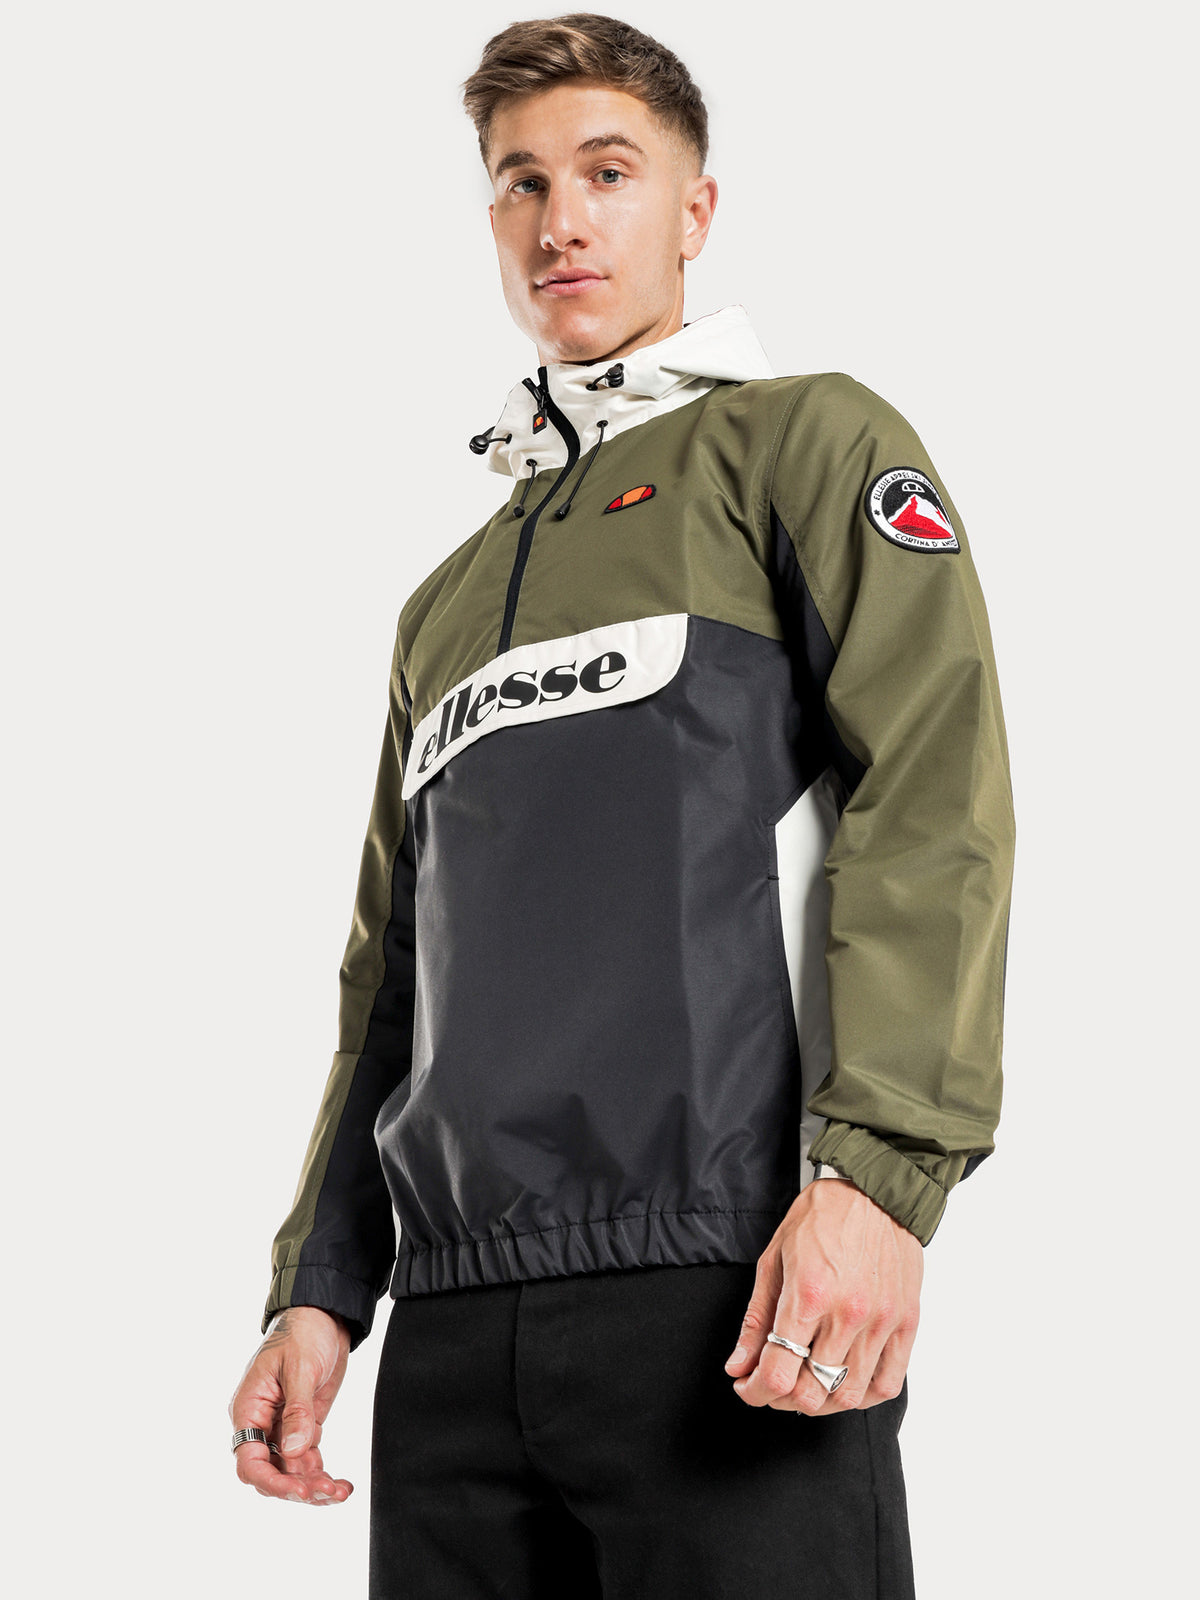 Moretti 1/2 Zip Jacket in Khaki